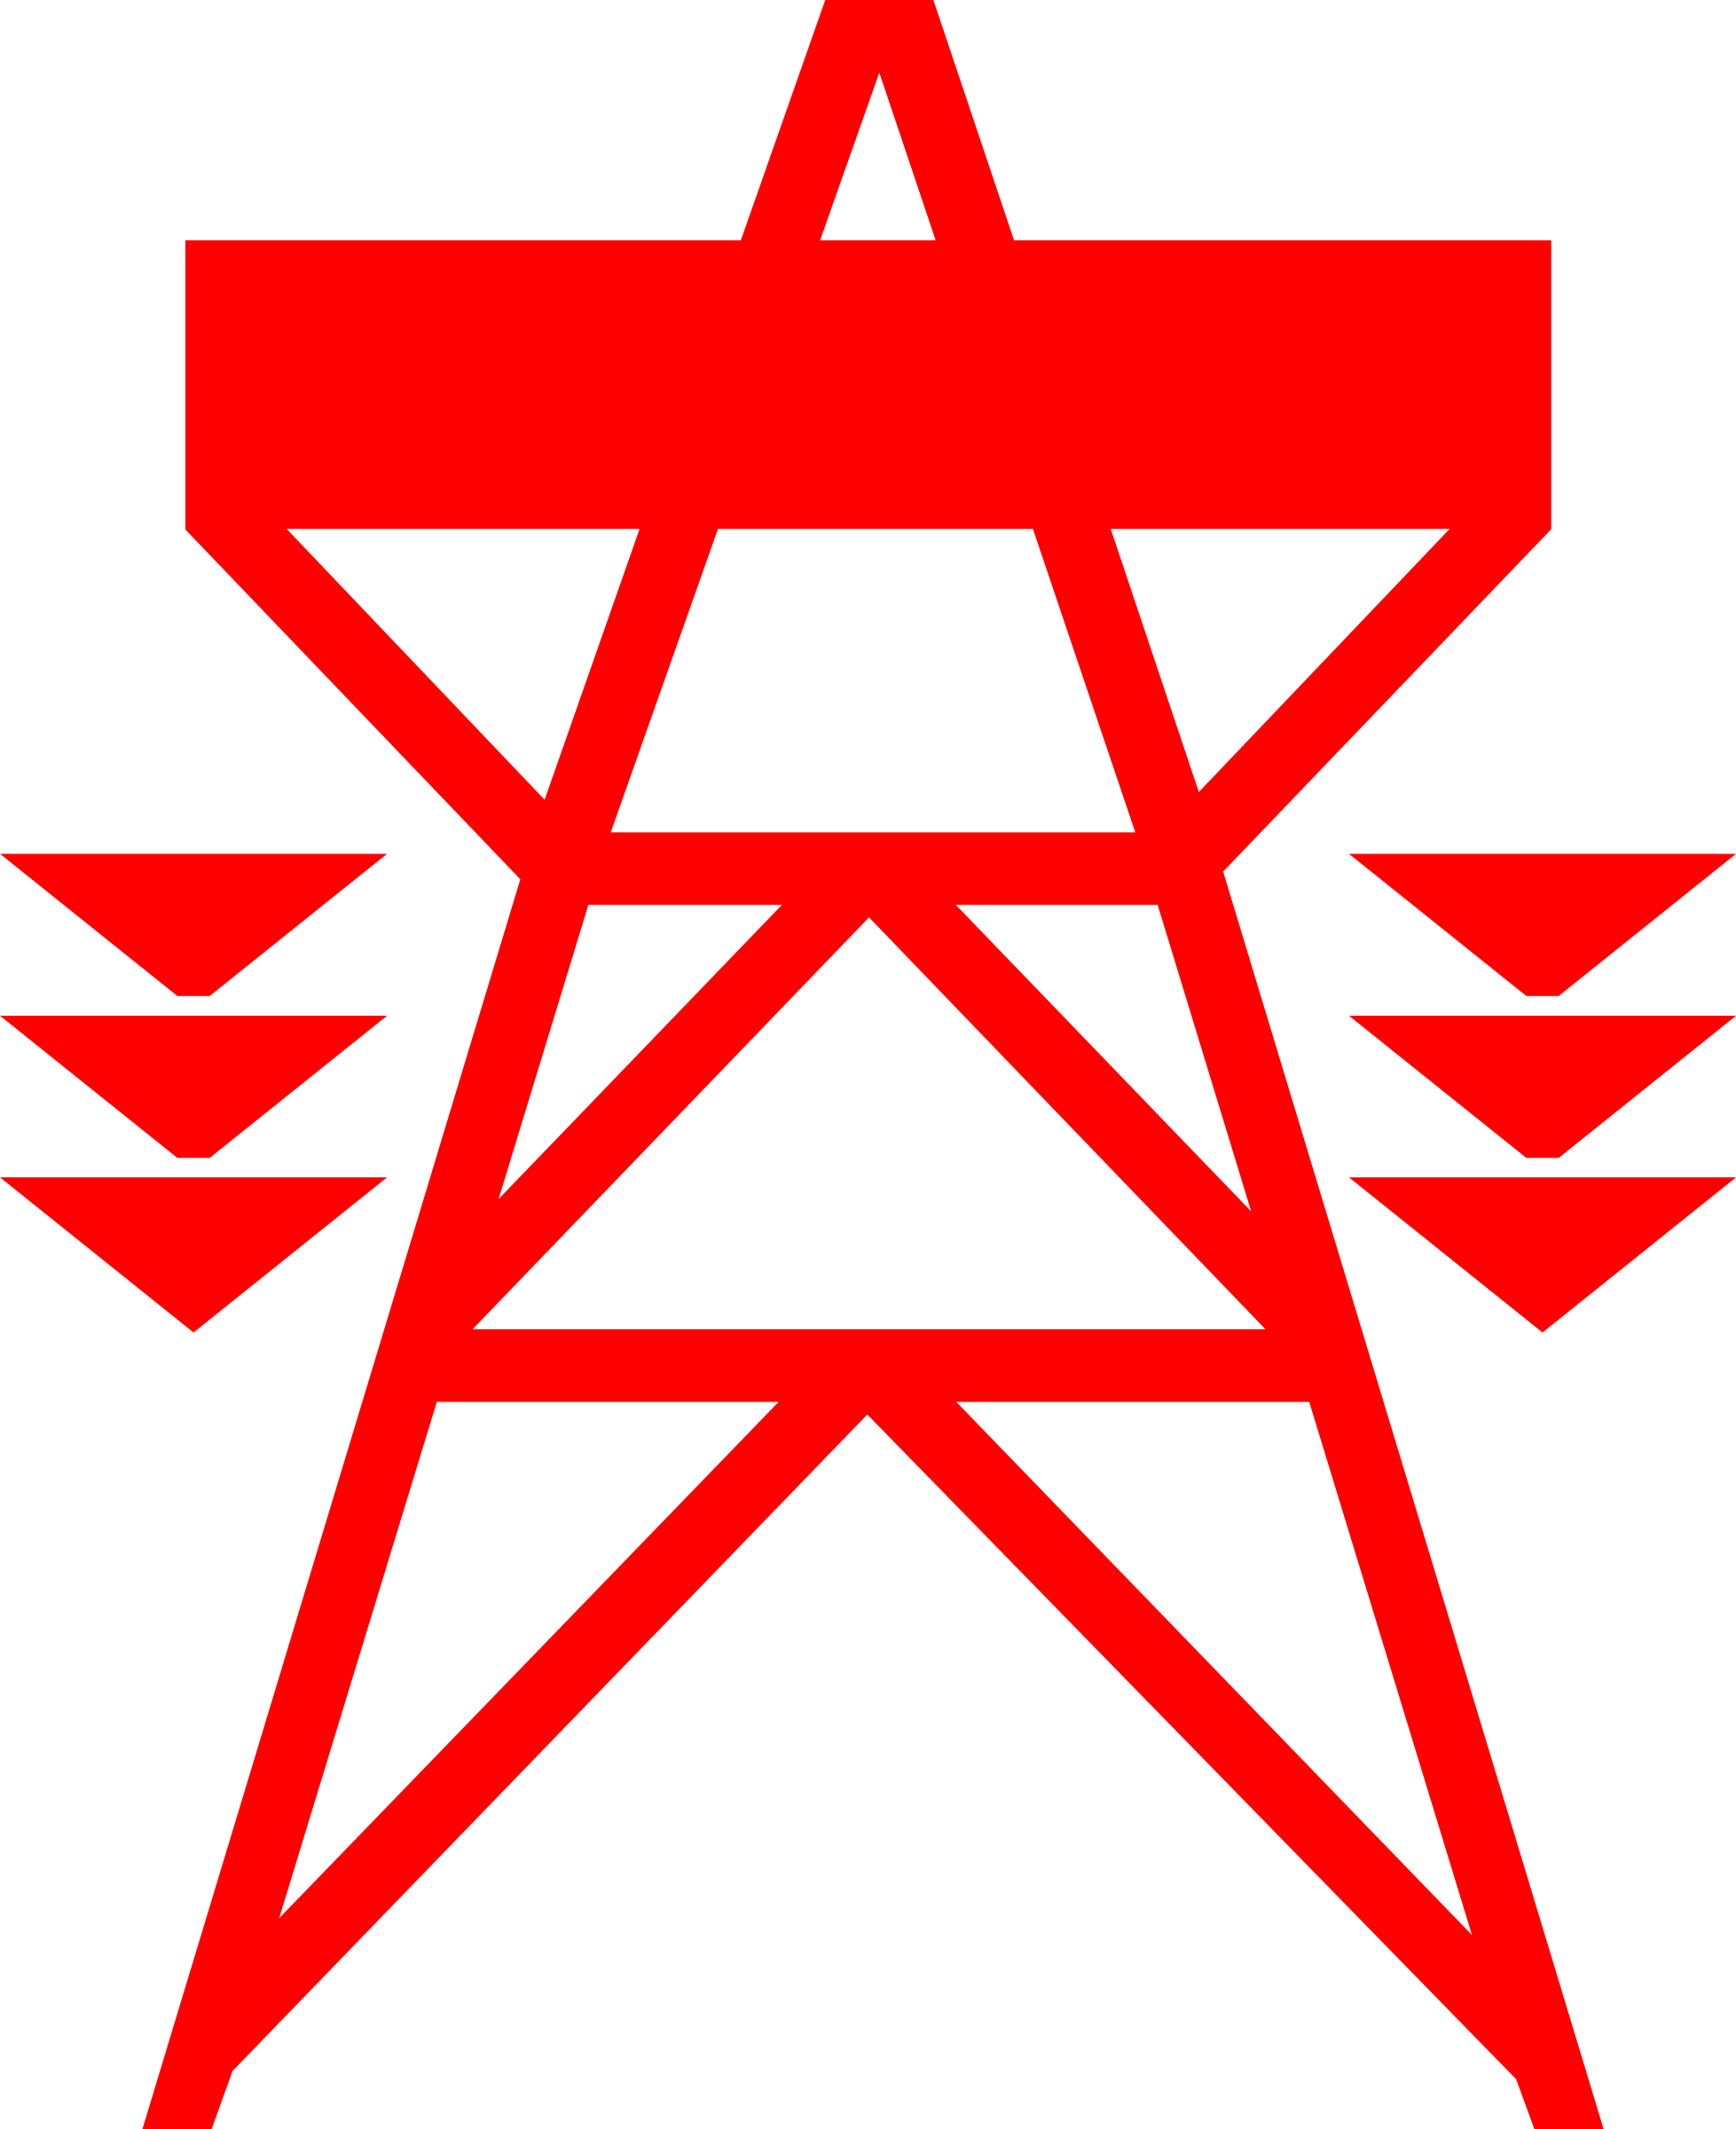 Transmission tower clipart.